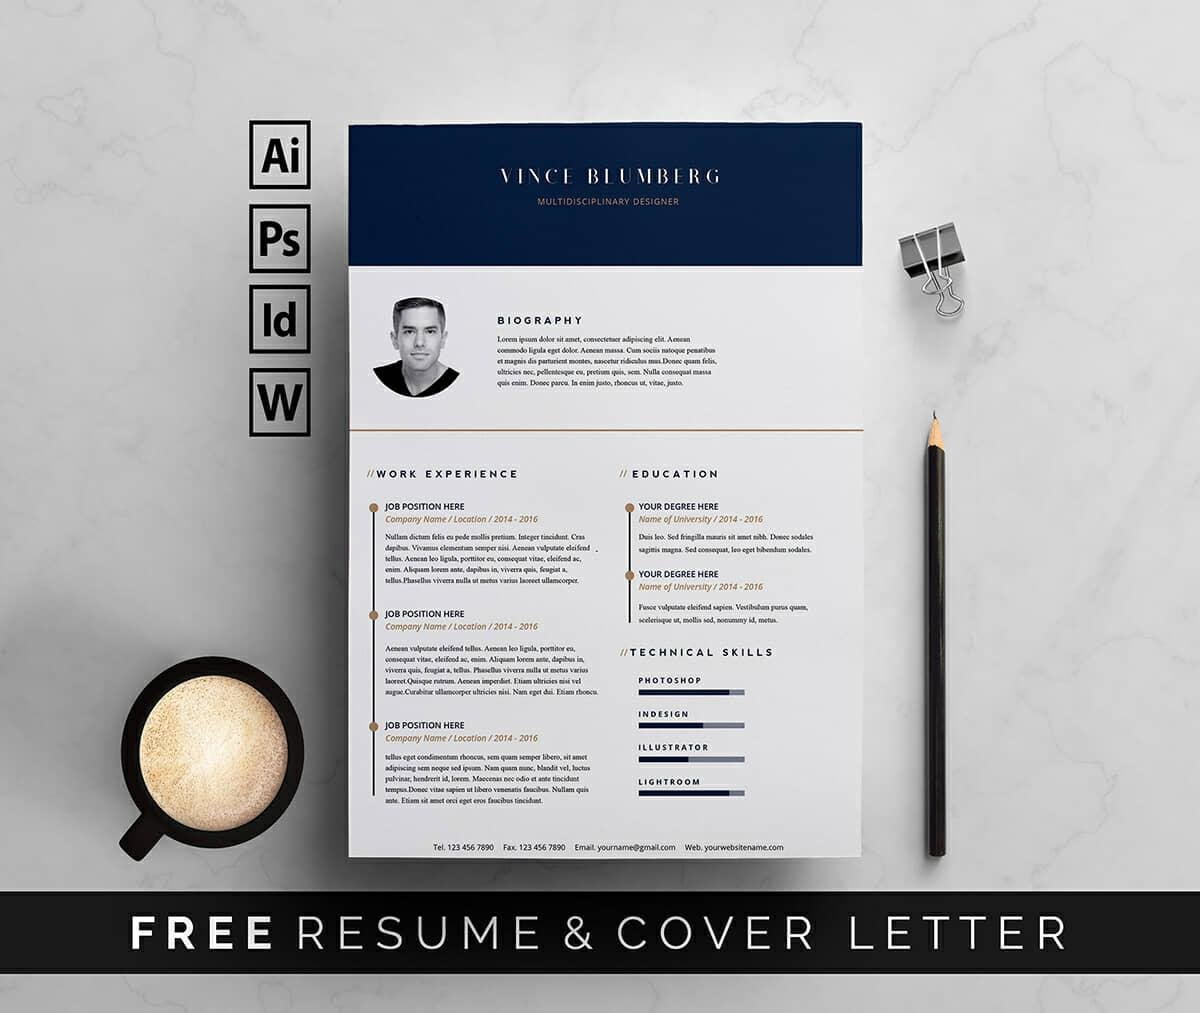 how and when to use good resume examples A good resume persuasively captures the applicant's unique set of skills, experiences and training writing a powerful resume requires carefully tailoring personal attributes to the particular job being sought.